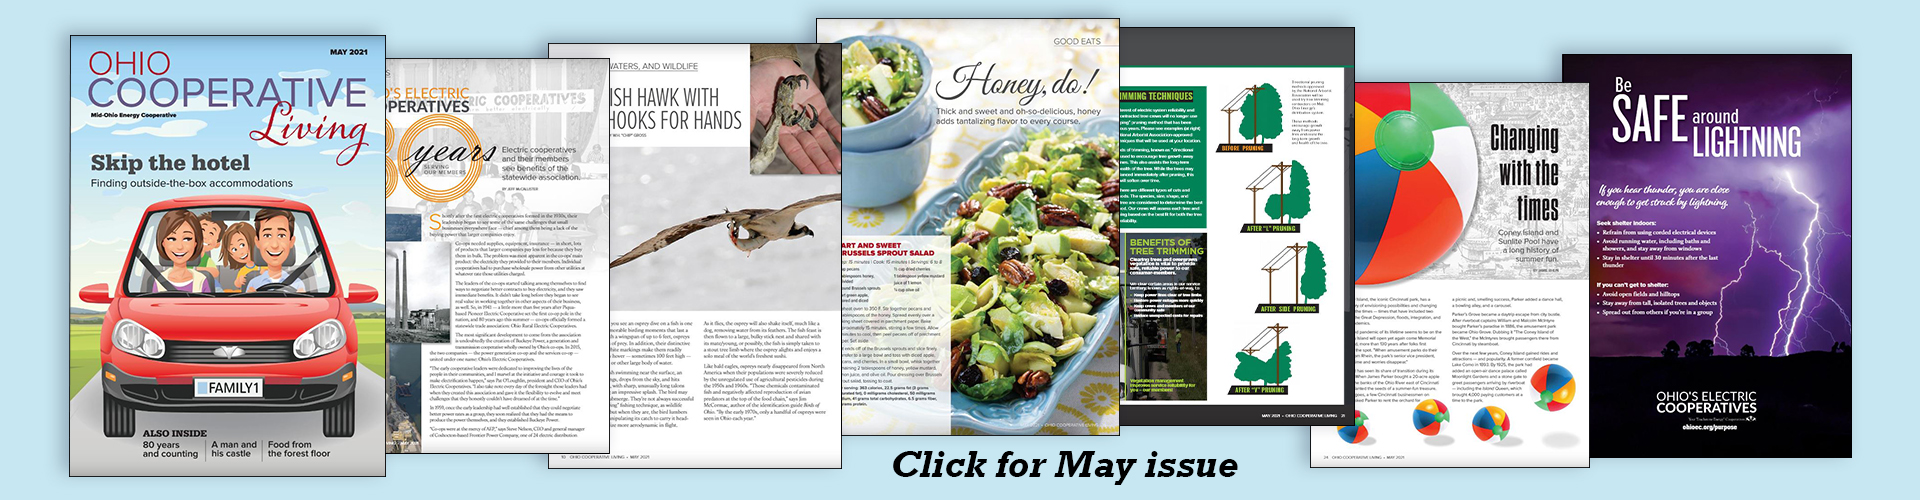 View the May issue of Ohio Cooperative Living magazine